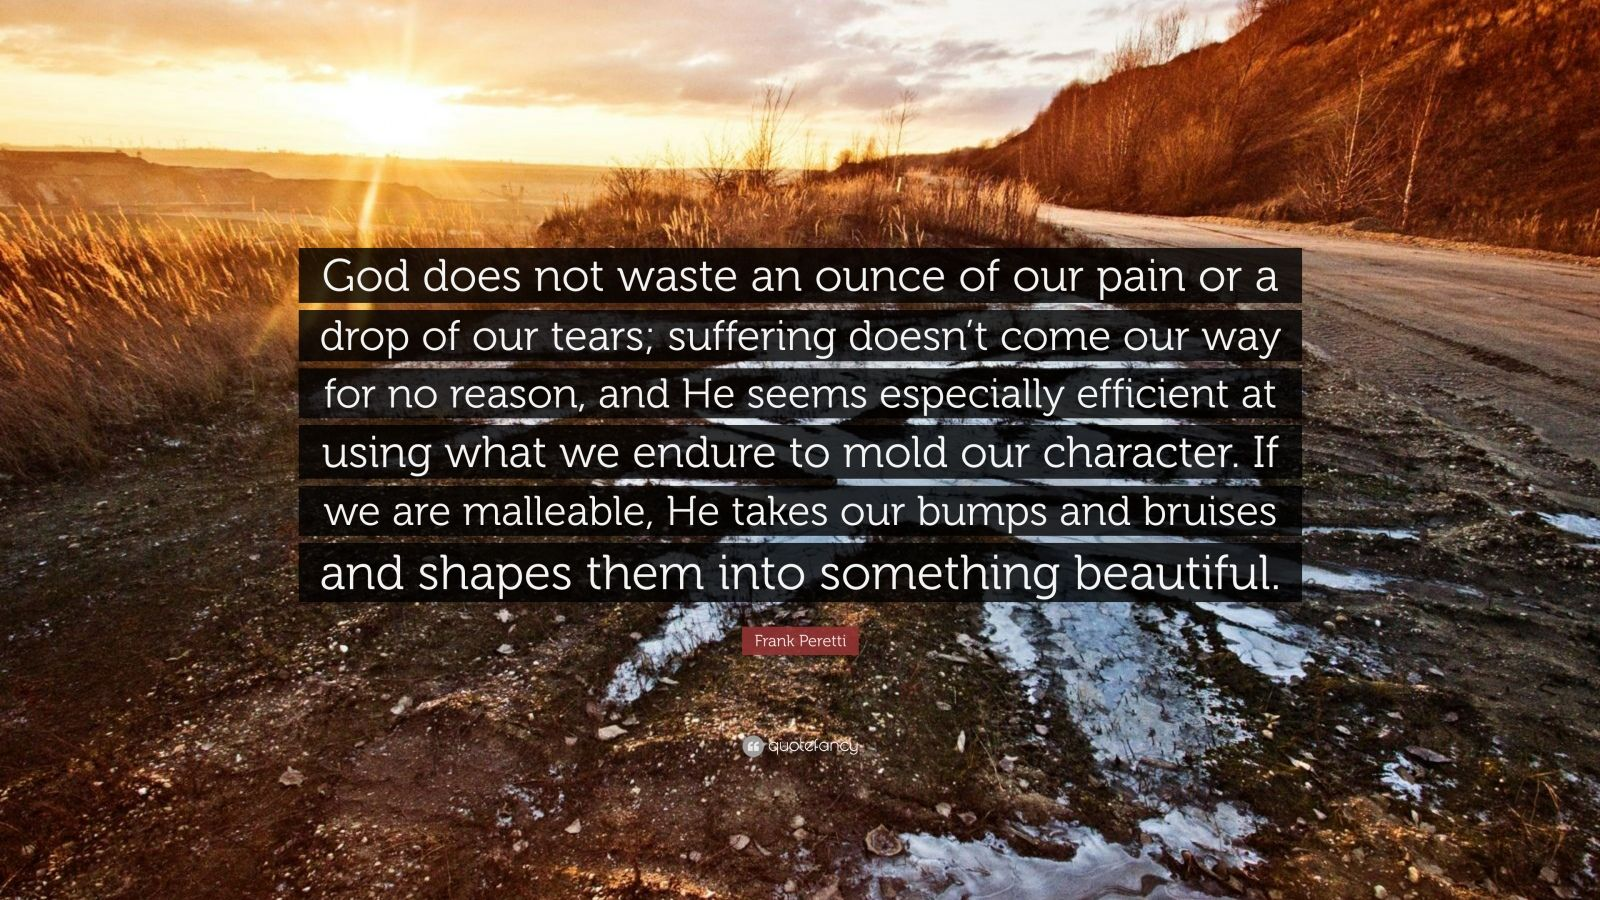 "Frank Peretti Quote: ""God does not waste an ounce of our pain or a drop of our tears; suffering doesn't come our way for no reason, and He seems especially efficient at using what we endure to mold our character. If we are malleable, He takes our bumps and bruises and shapes them into something beautiful."""